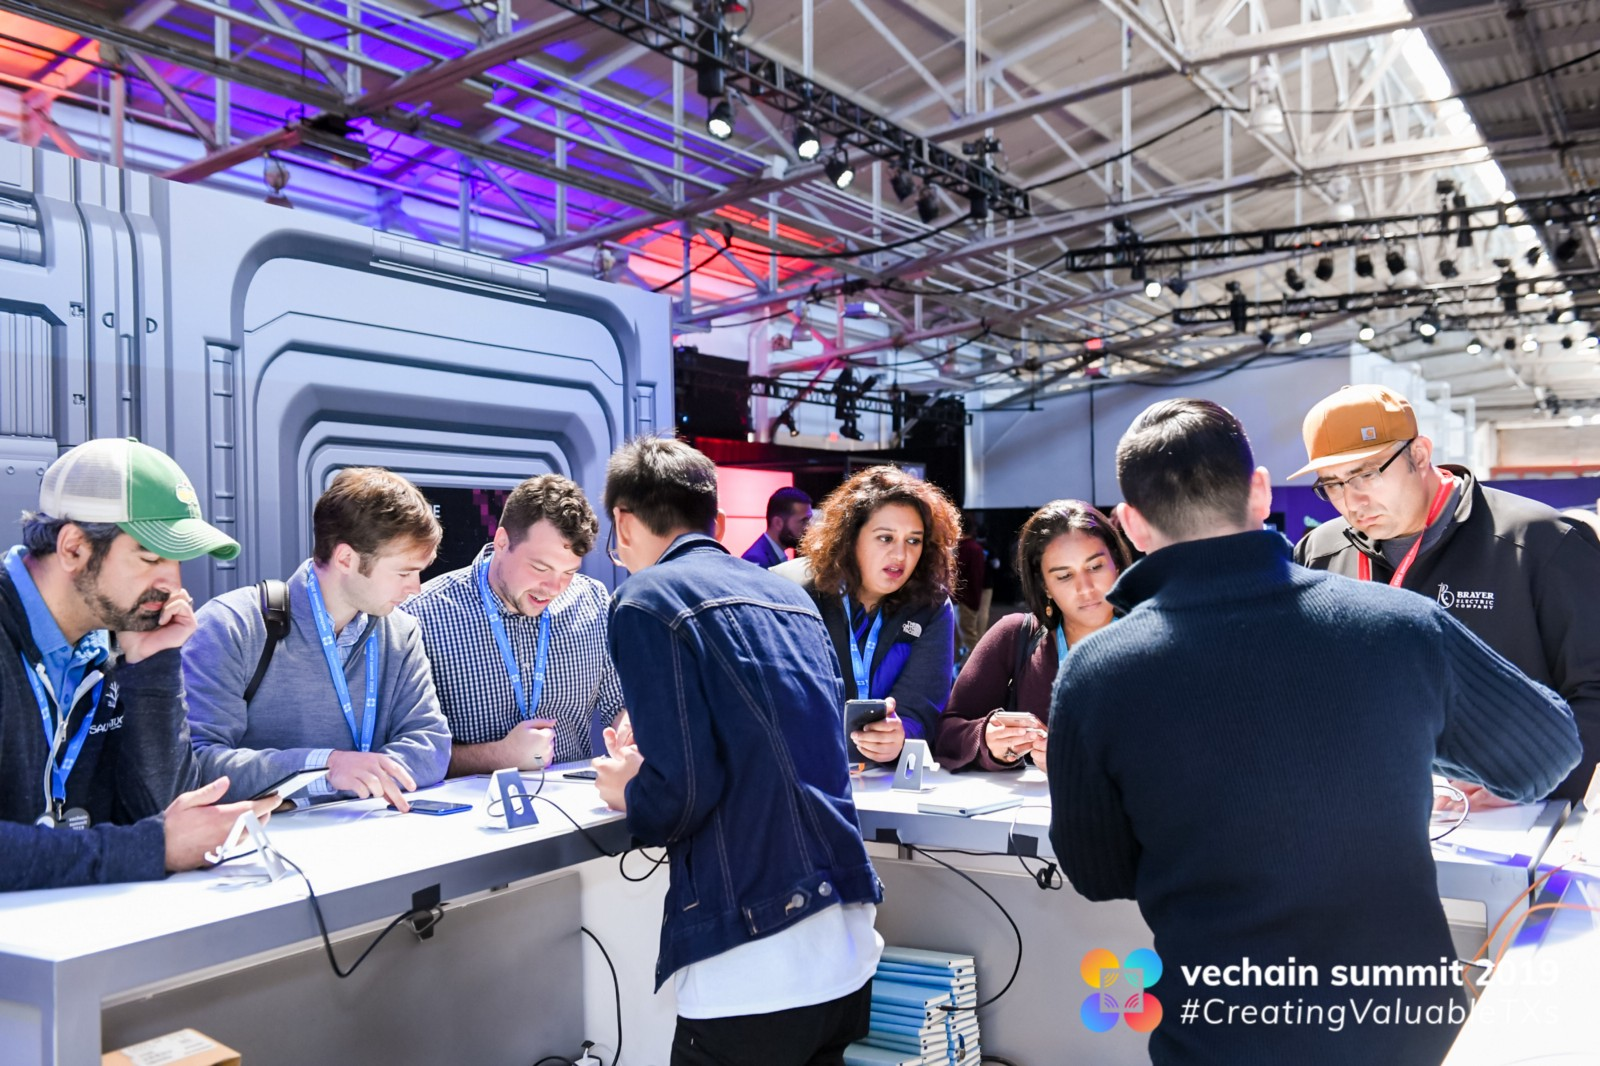 Hands-on Lab at the VeChain Summit 2019